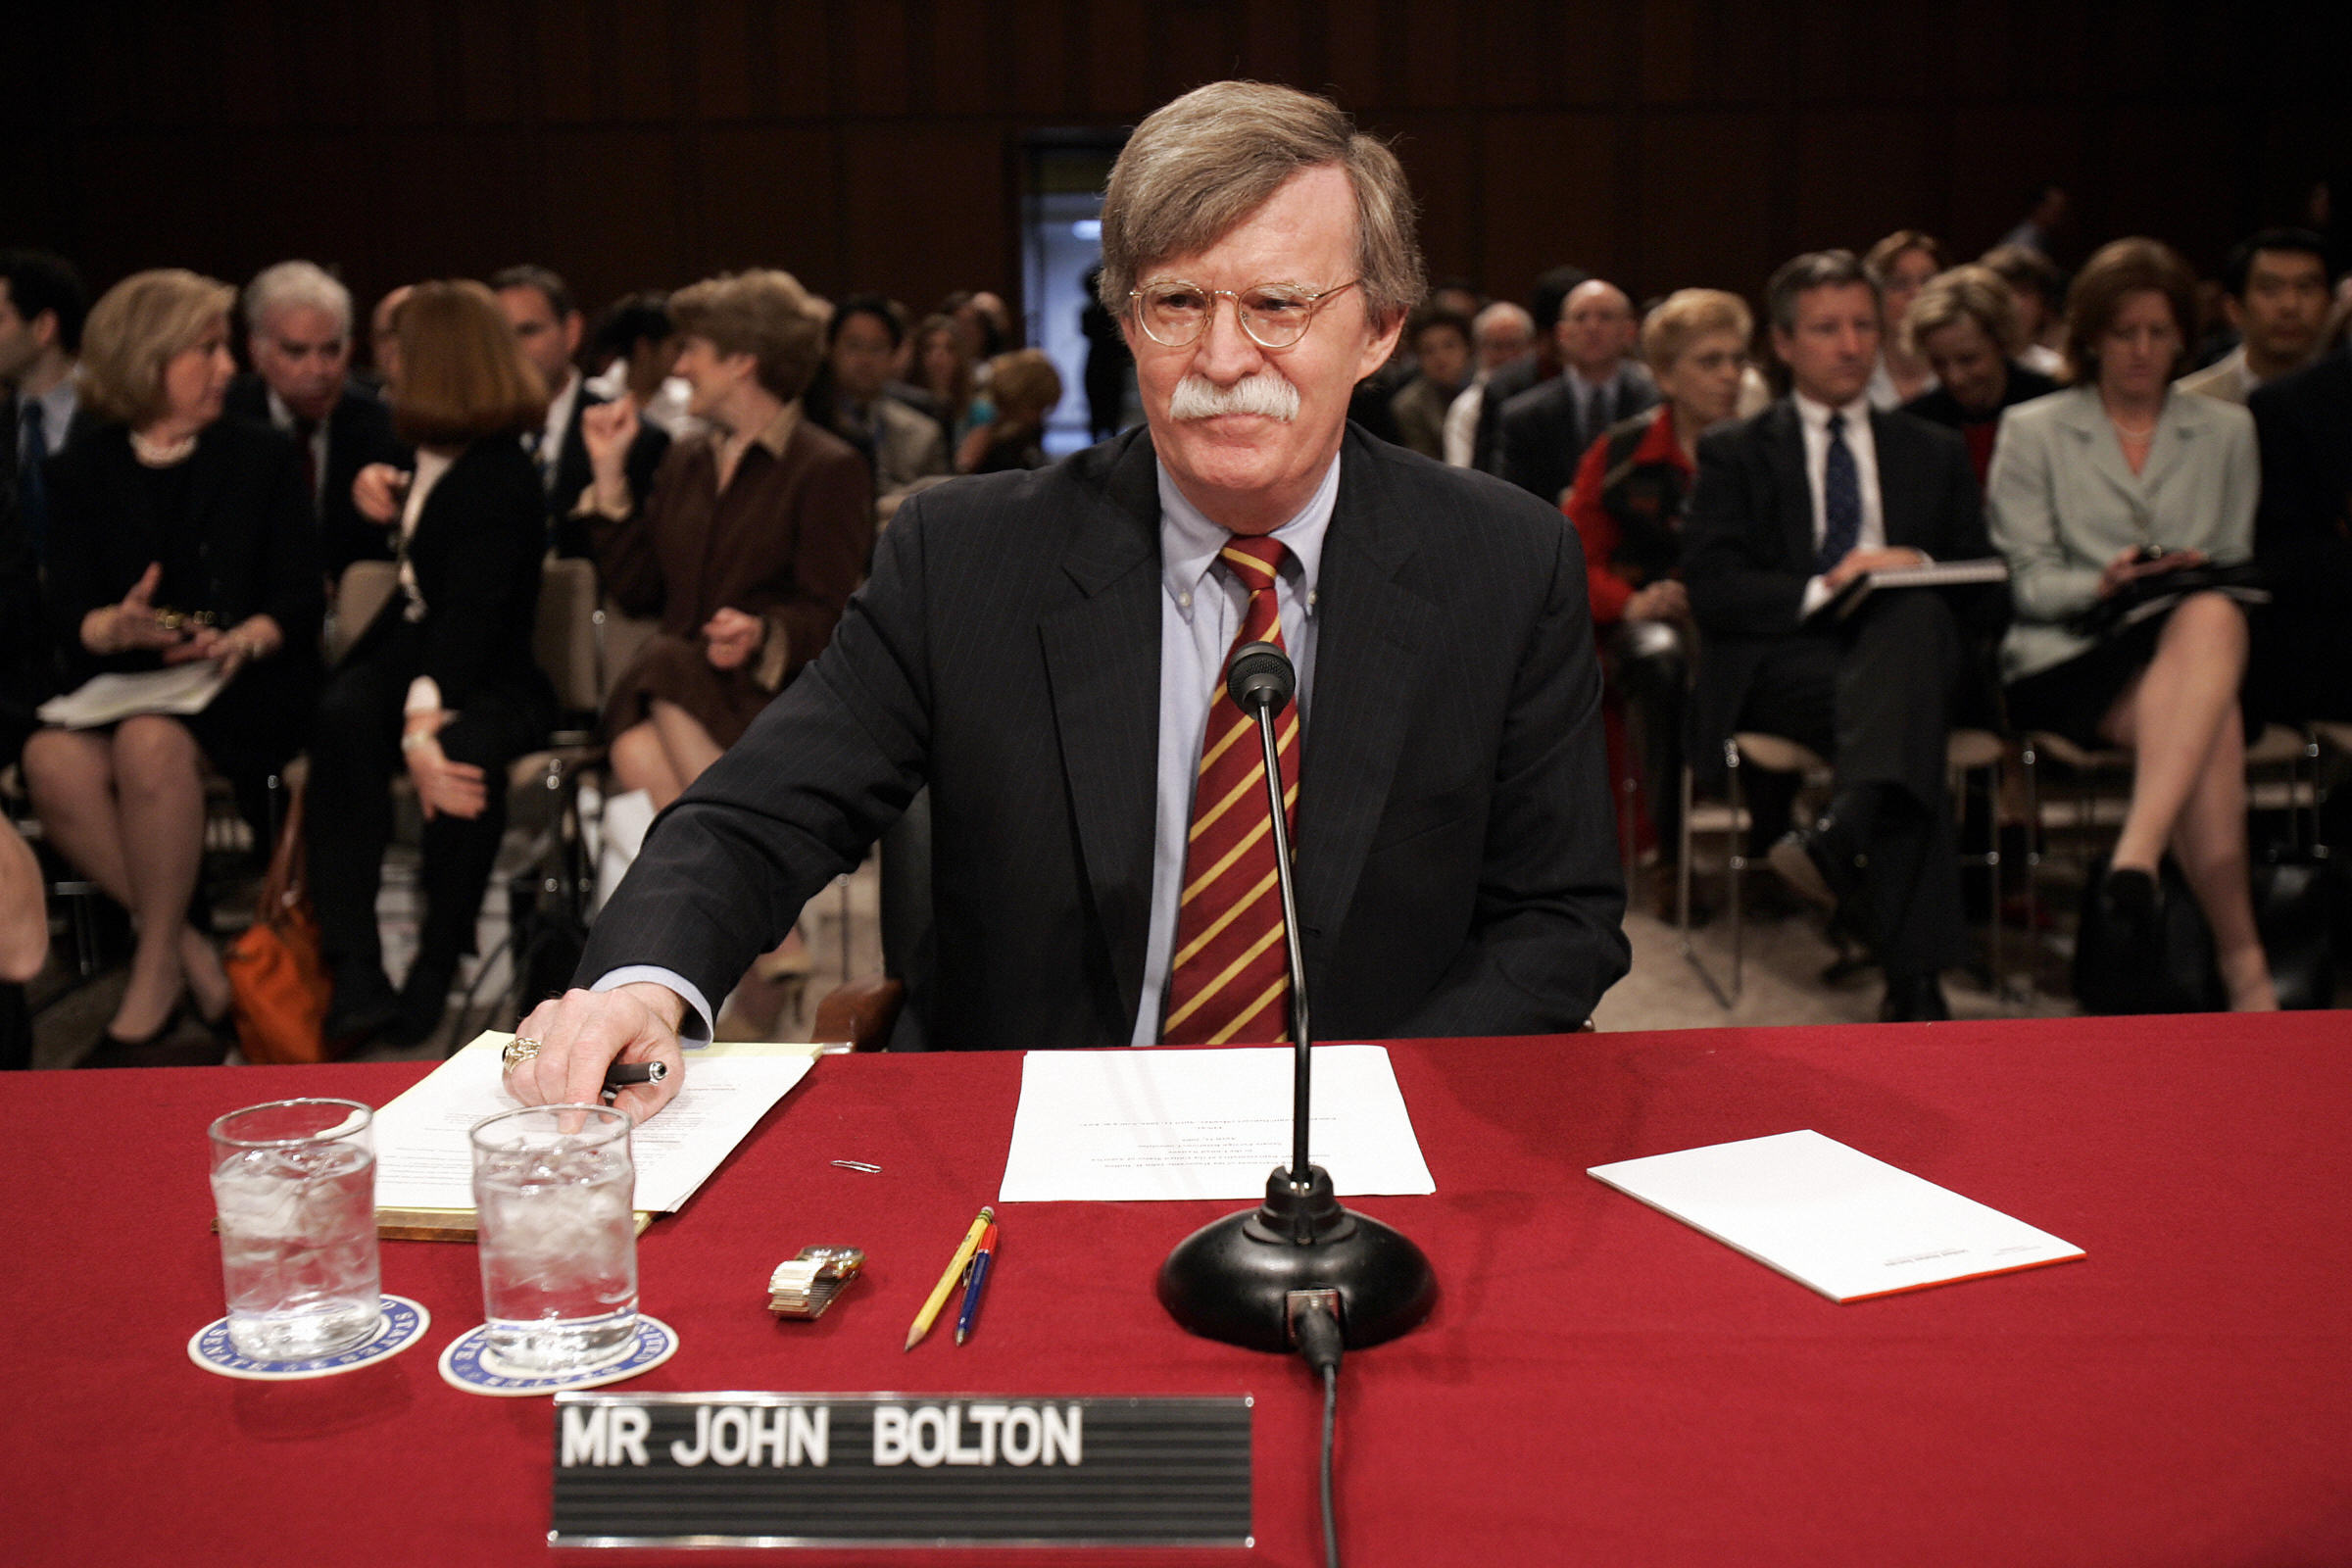 John Bolton takes his seat before a confirmation hearing of the Senate Foreign Relations Committee on Capitol Hill April 11, 2005 in Washington  for his nomination as US ambassador to the United Nations.